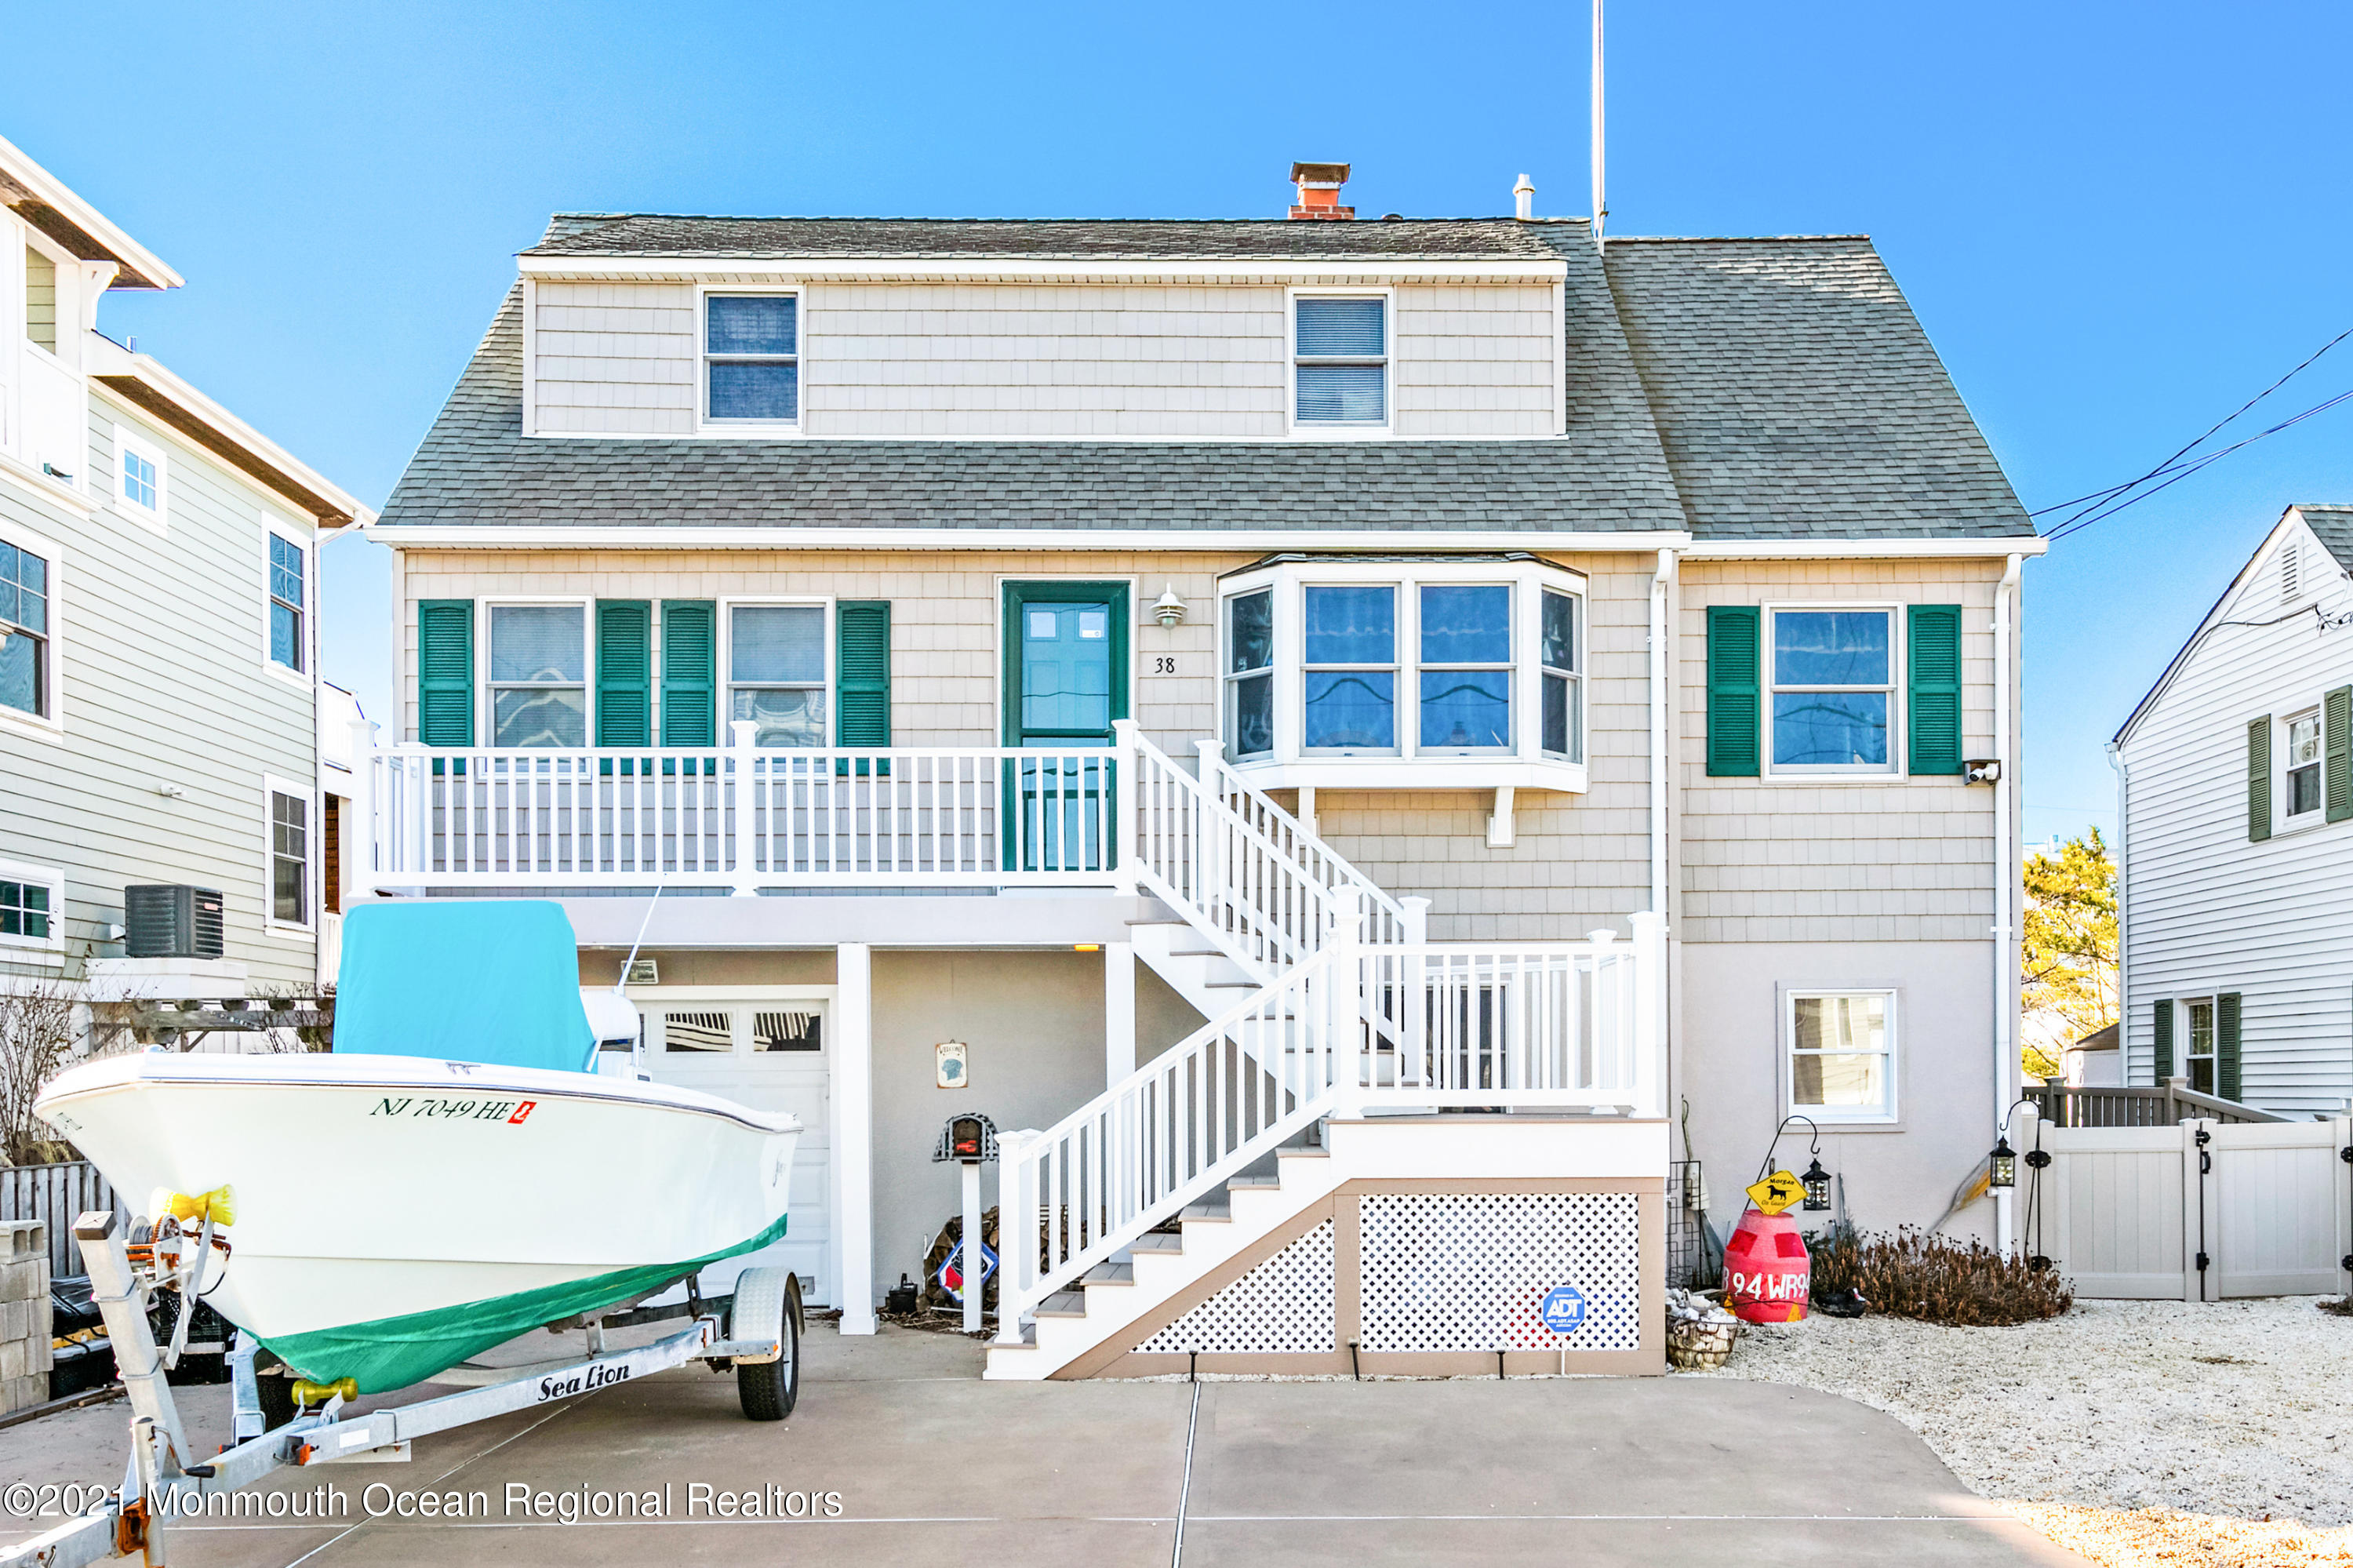 38 W Sailboat Lane, Long Beach Twp, New Jersey 08008, 3 Bedrooms Bedrooms, ,2 BathroomsBathrooms,Single Family,For Sale,38 W Sailboat Lane,2,22103825